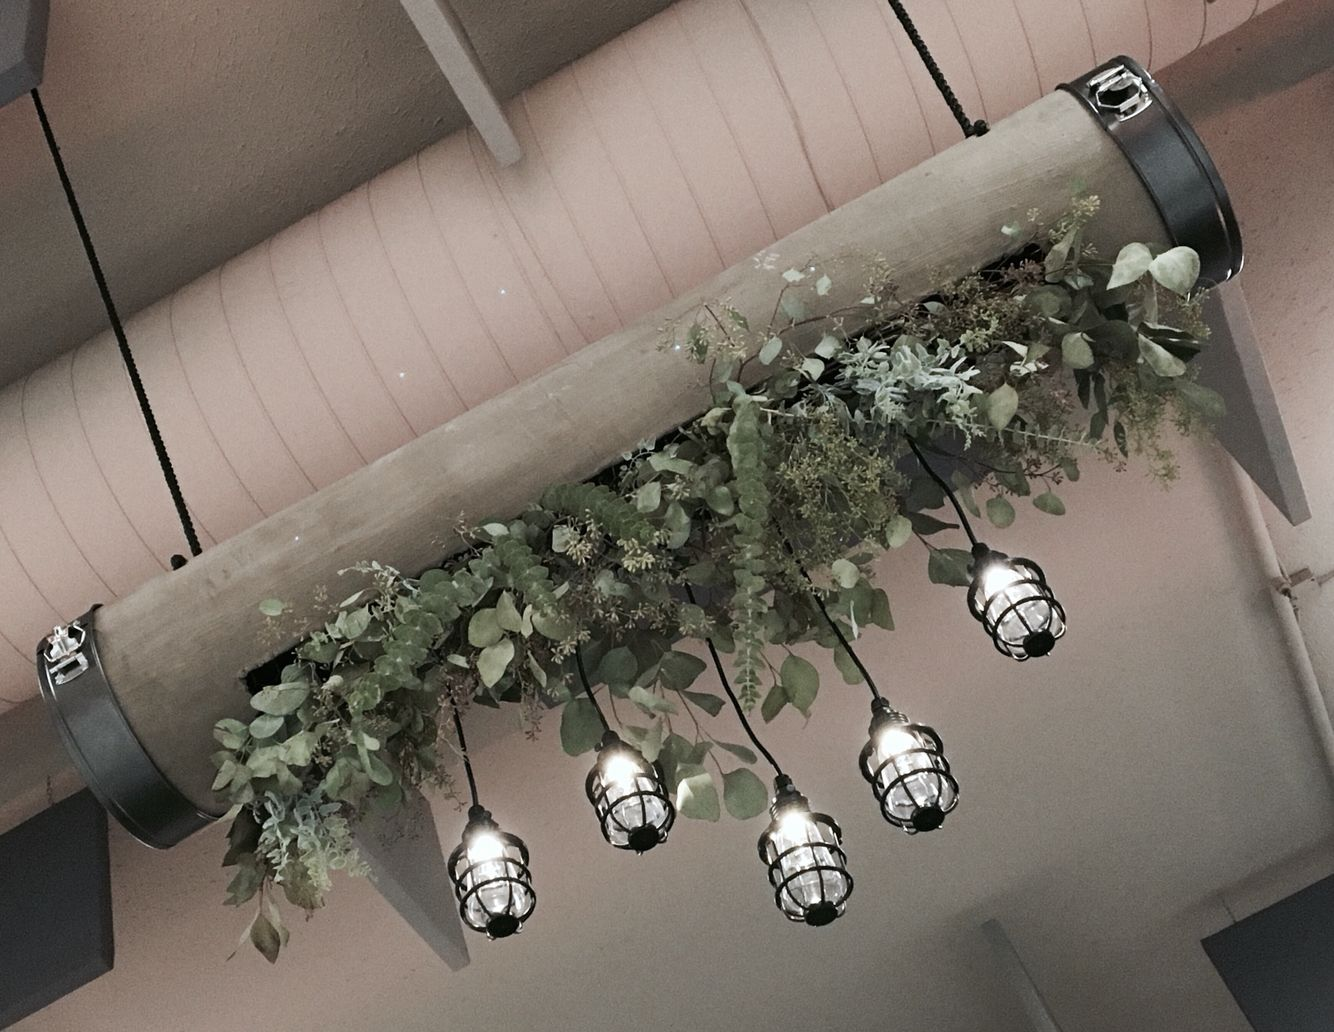 Kronleuchter Floral ~ Concrete floral chandeliers by dana smyl event florist found at